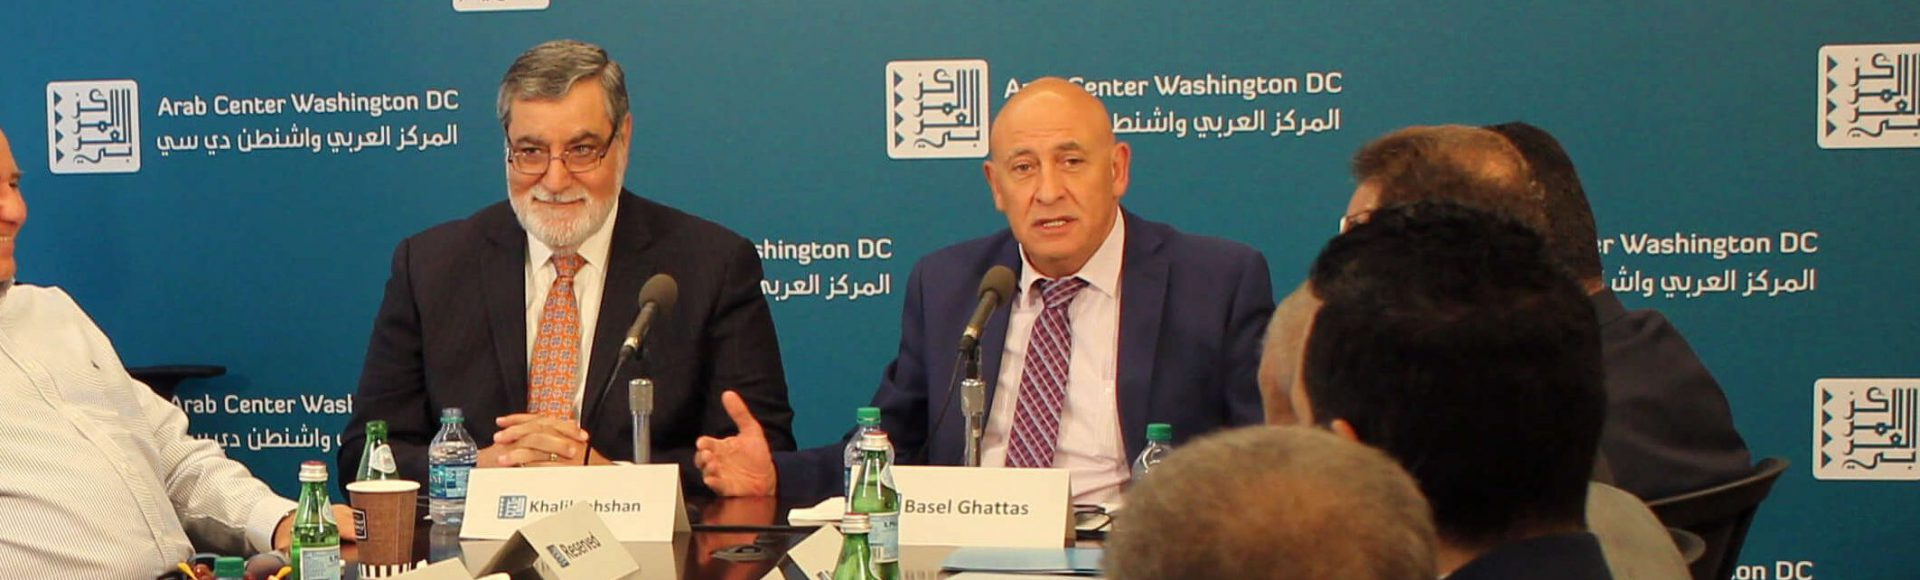 Ghattas.Arab.Center.jpg